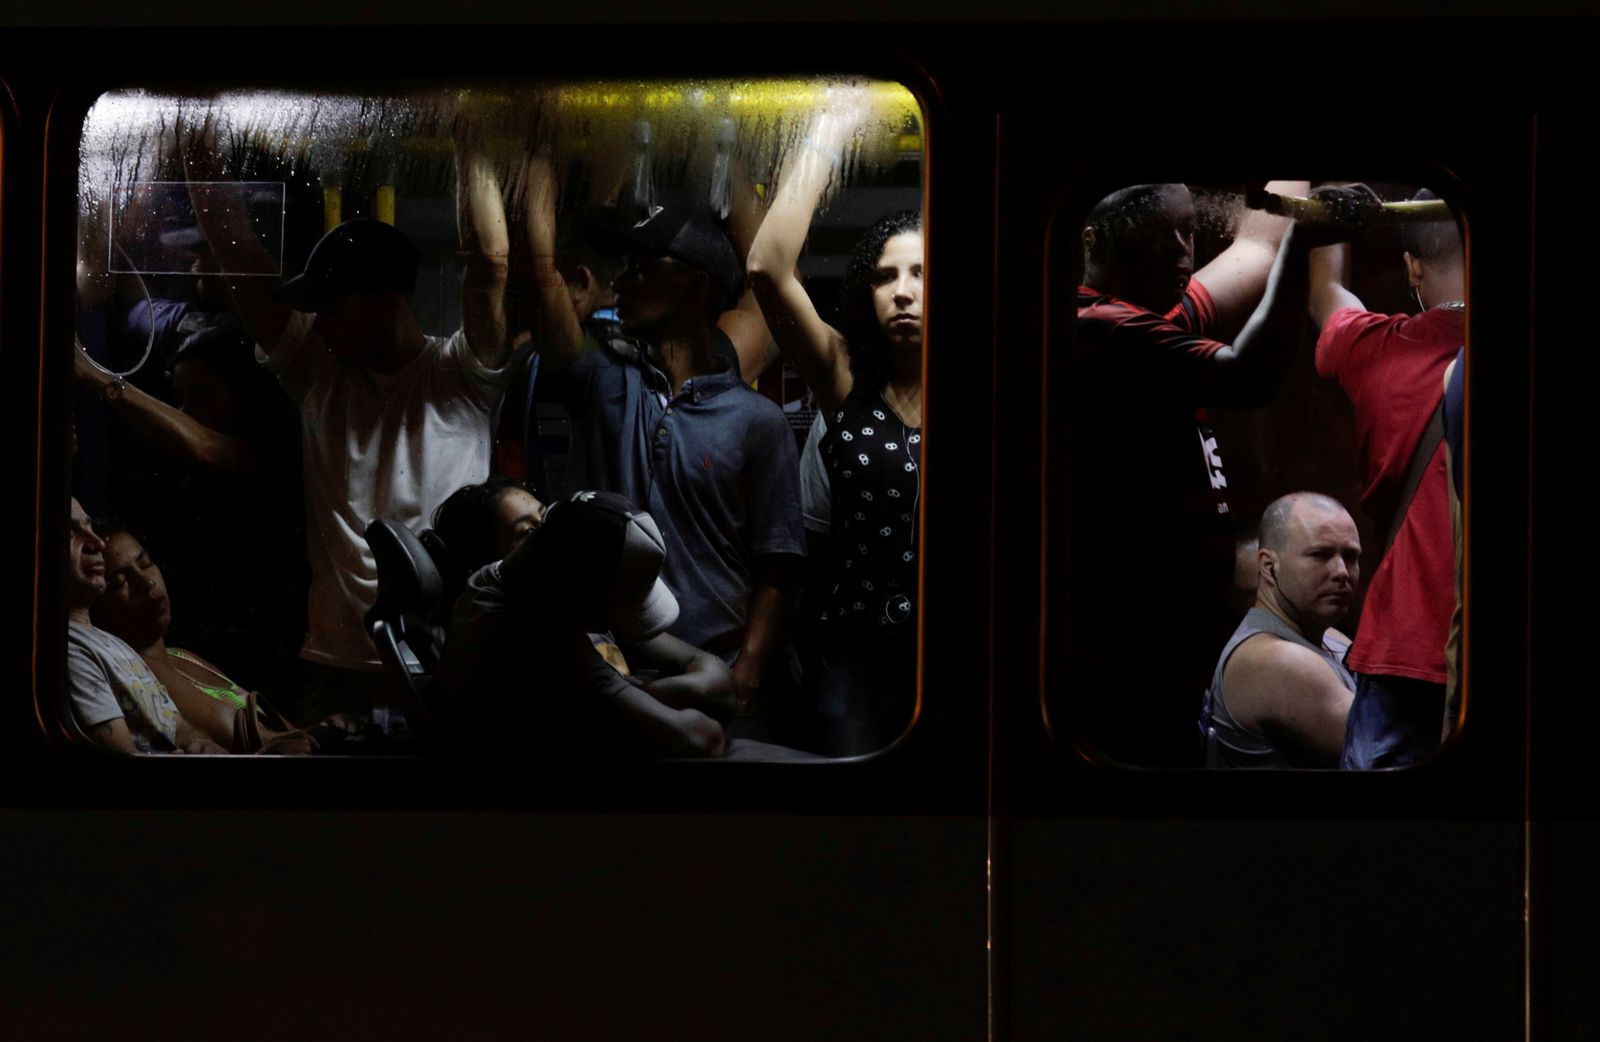 Passengers are pictured inside a public bus during the outbreak of the coronavirus disease (COVID-19) in Rio de Janeiro